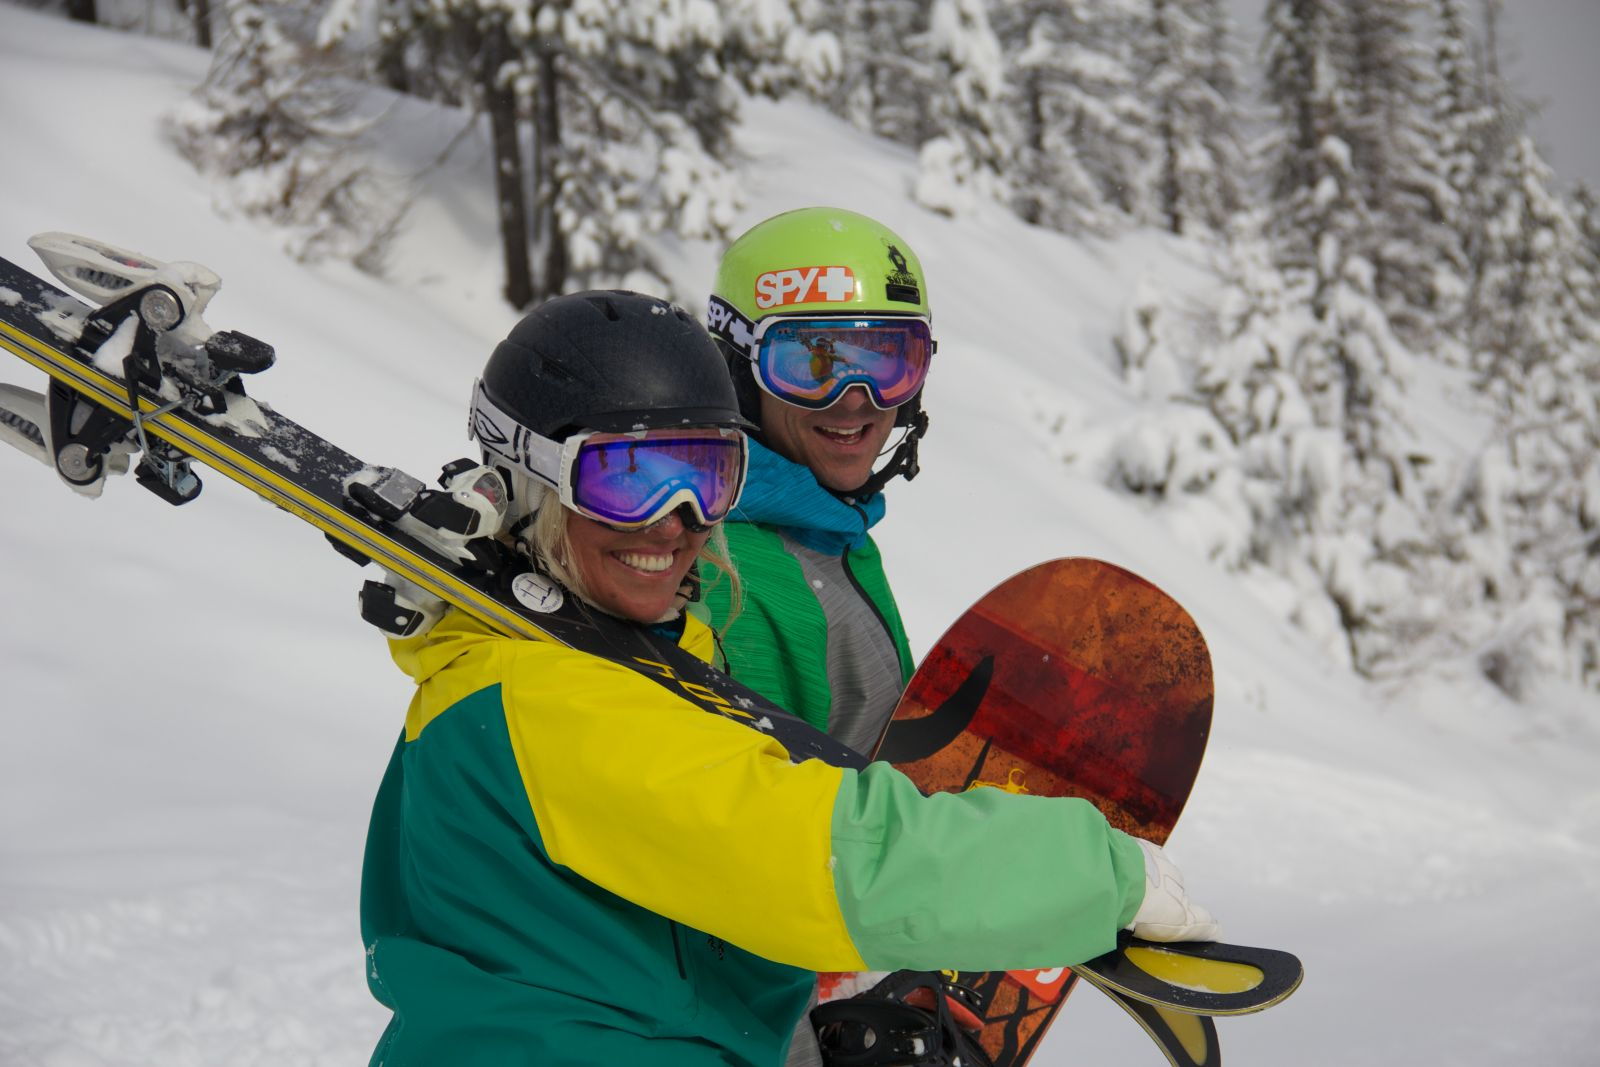 Skier and snowboarder excited to hit the slopes